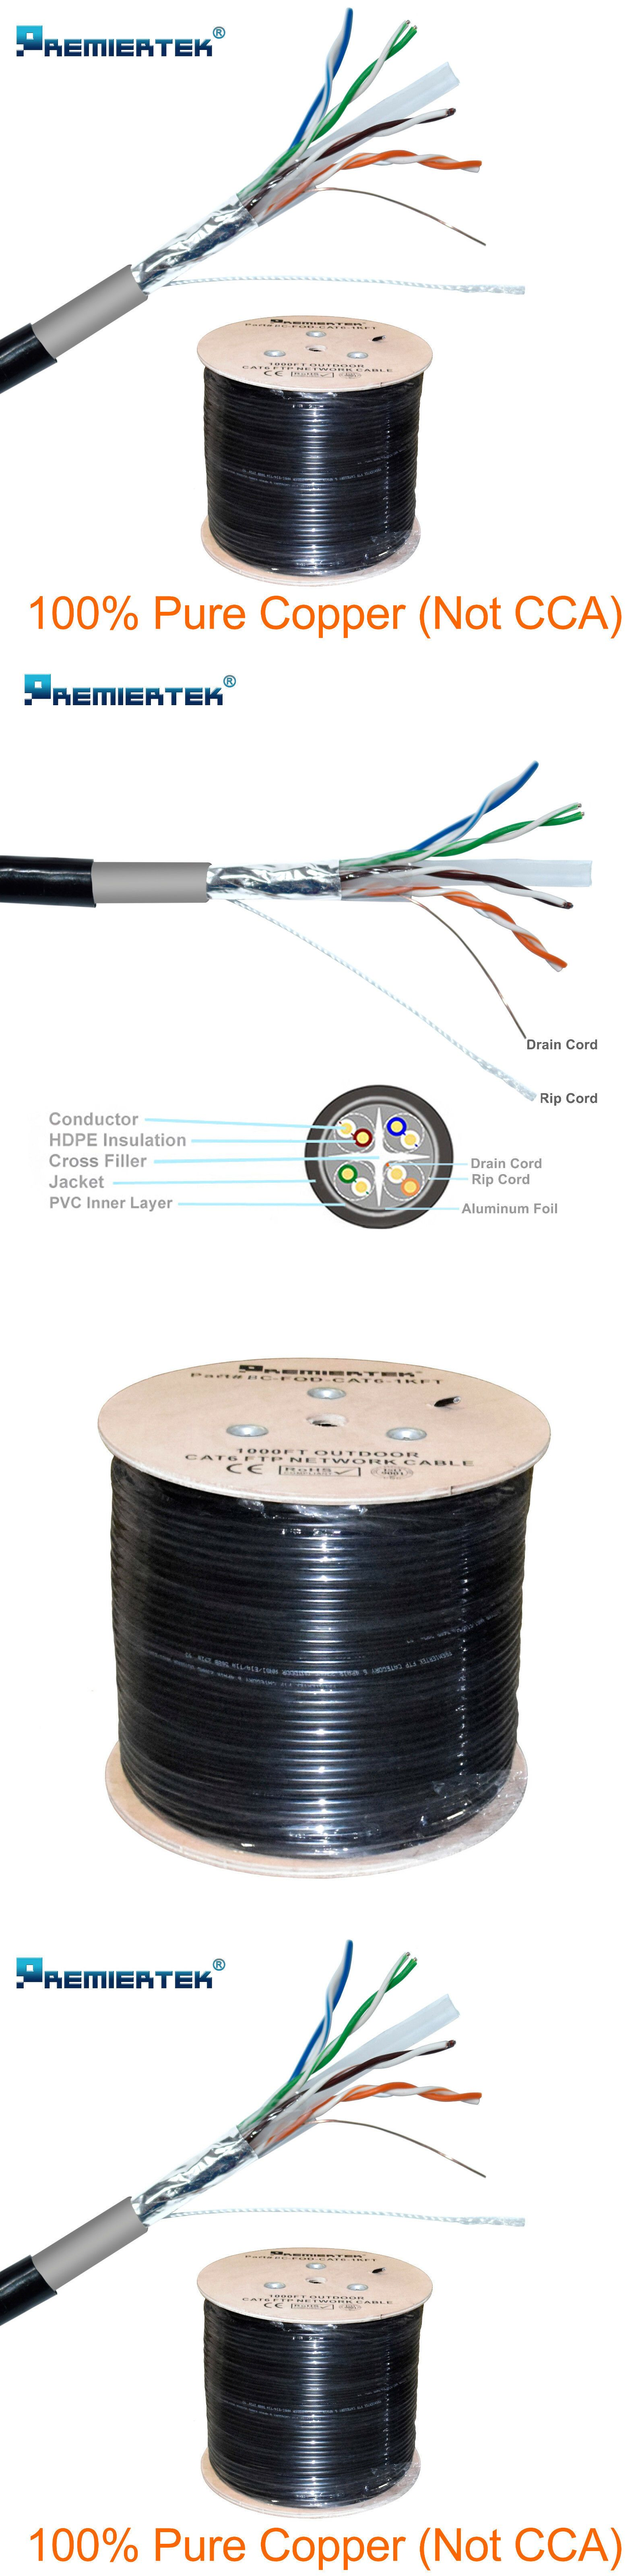 Ethernet Cables Rj 45 8p8c 64035 Pure Copper Ftp Cat6 1000ft Shielded Outdoor 23awg Cable Solid Direct Burial Uv B Pure Copper Pure Products Ethernet Cable